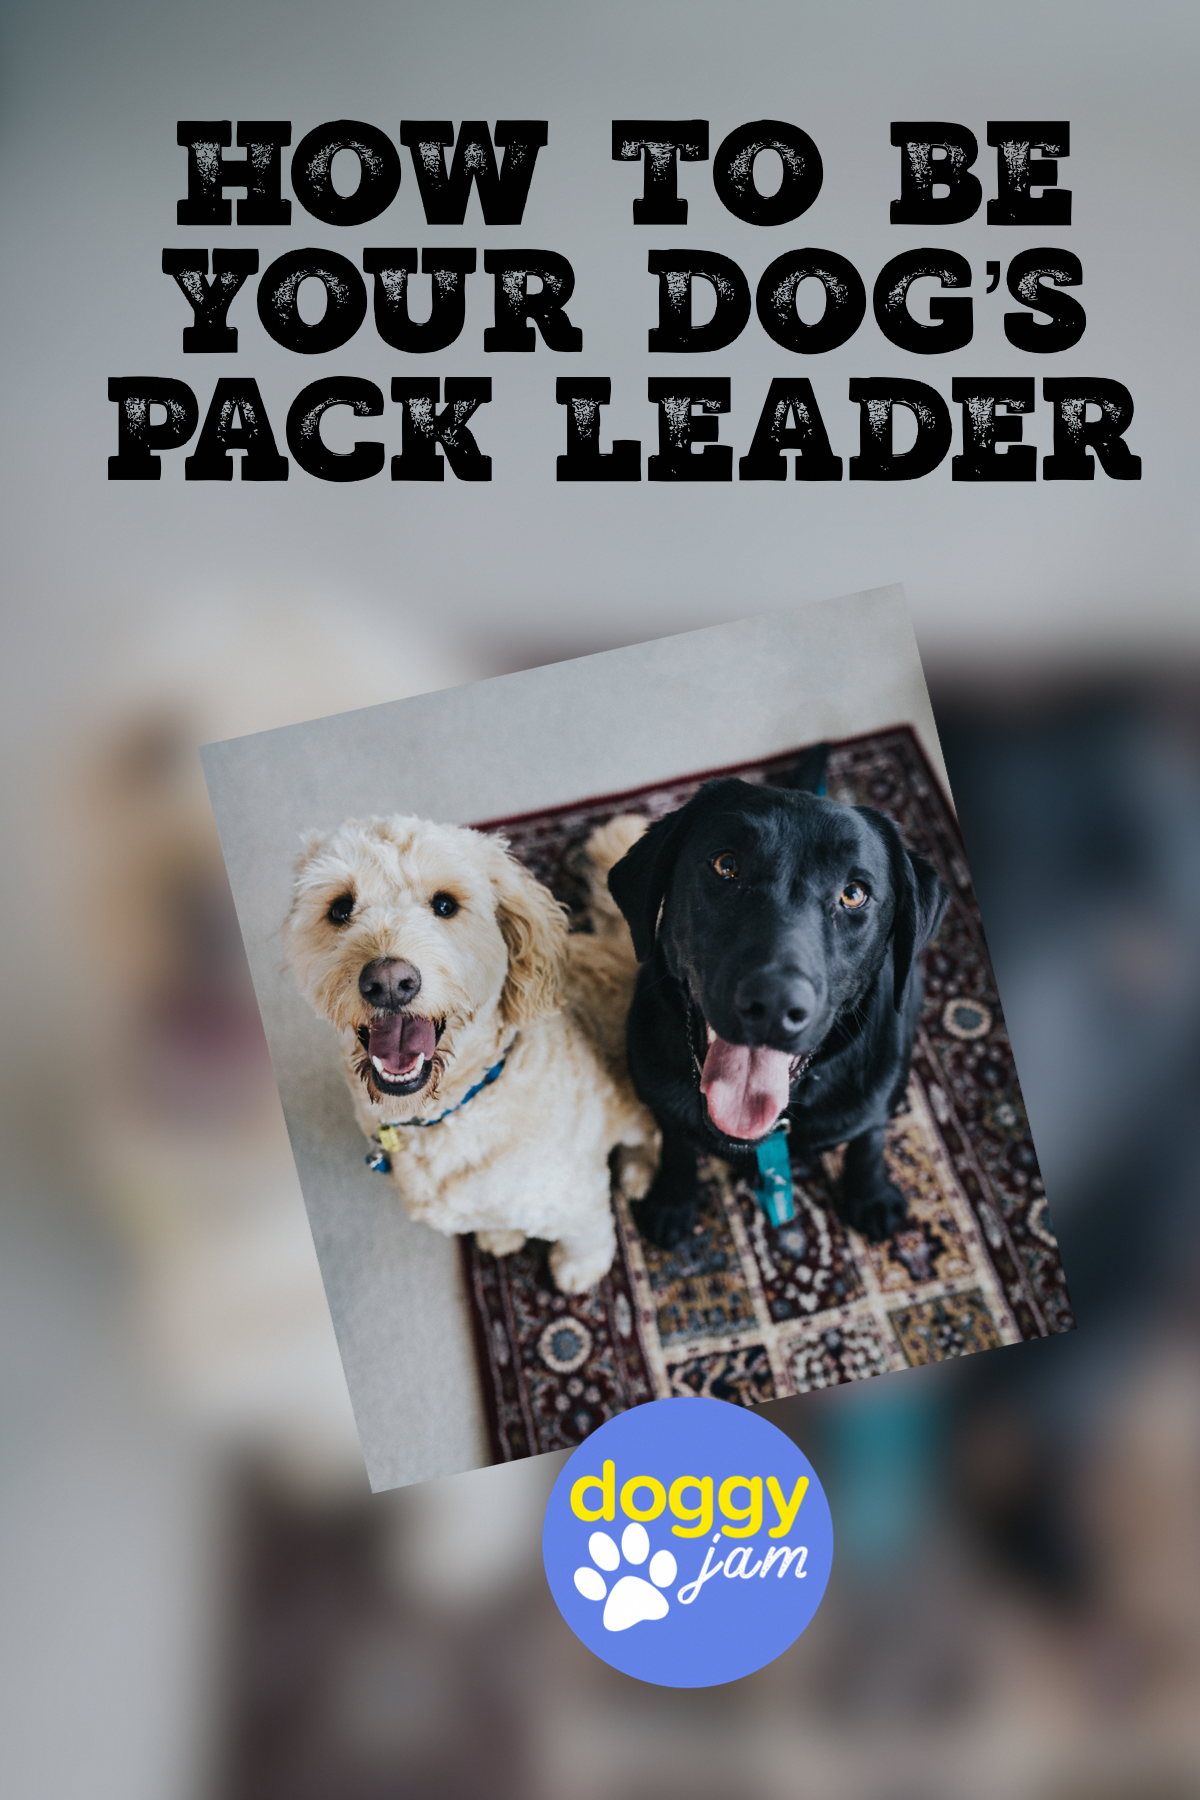 3 Simple Dog Training Tips That Will Change Your Dogs In No Time Dog Pack Leader Dog Training Obedience Training Your Dog